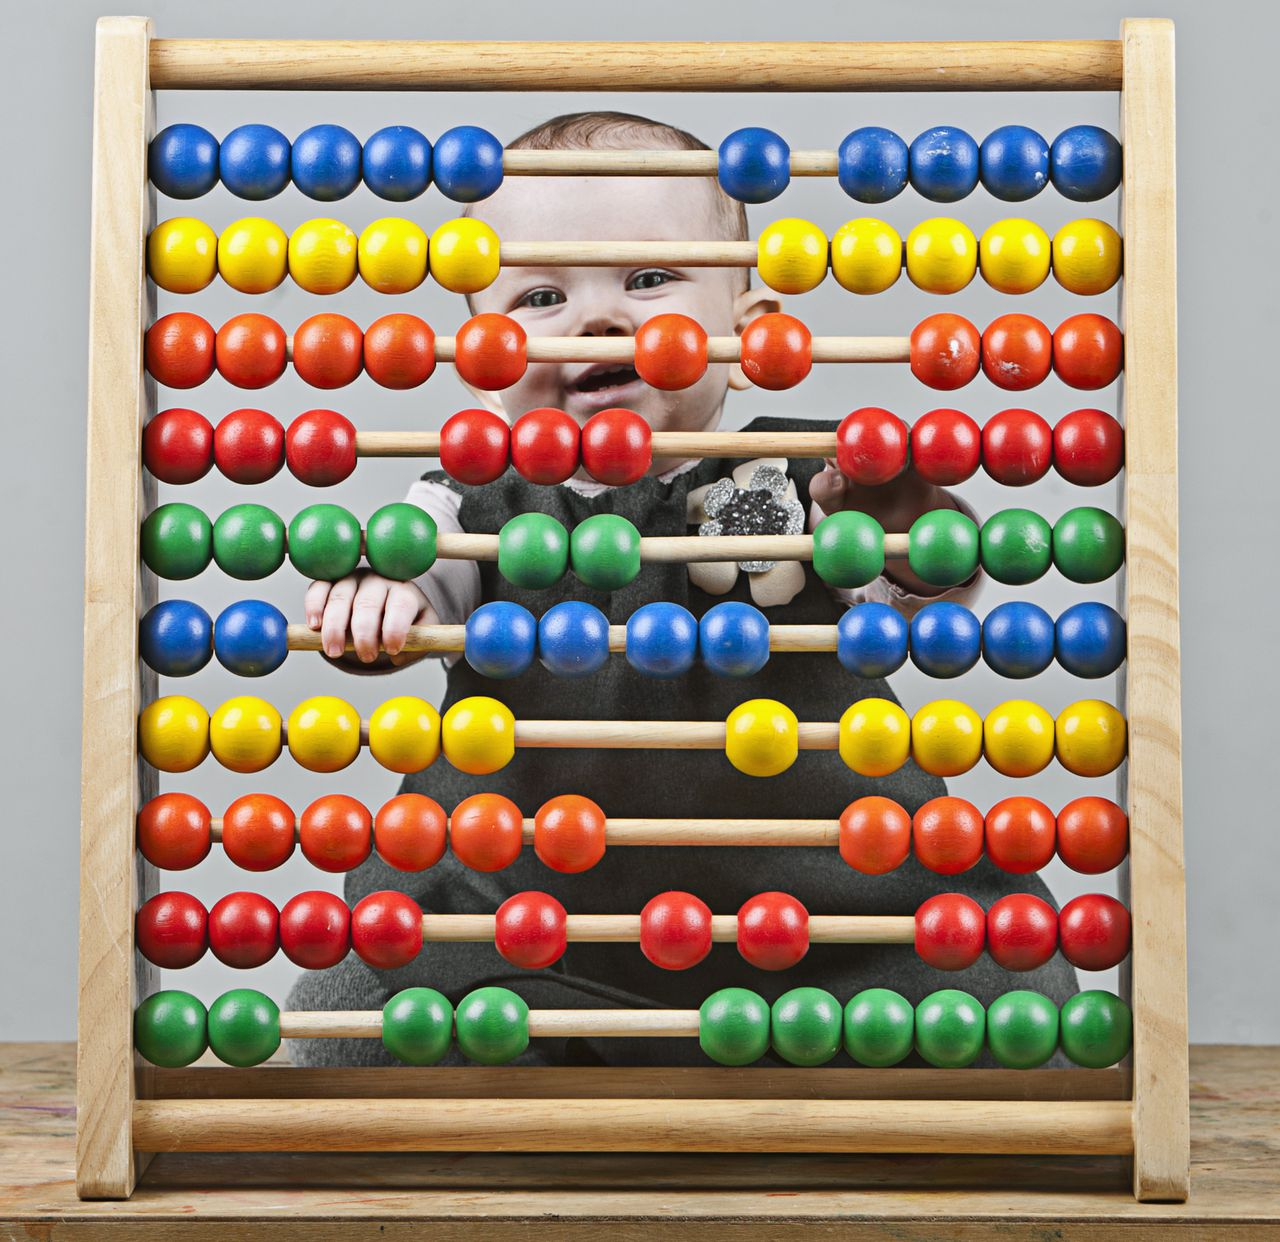 Baby Girl behind Wooden Abacus --- Image by © Justin Paget/Corbis